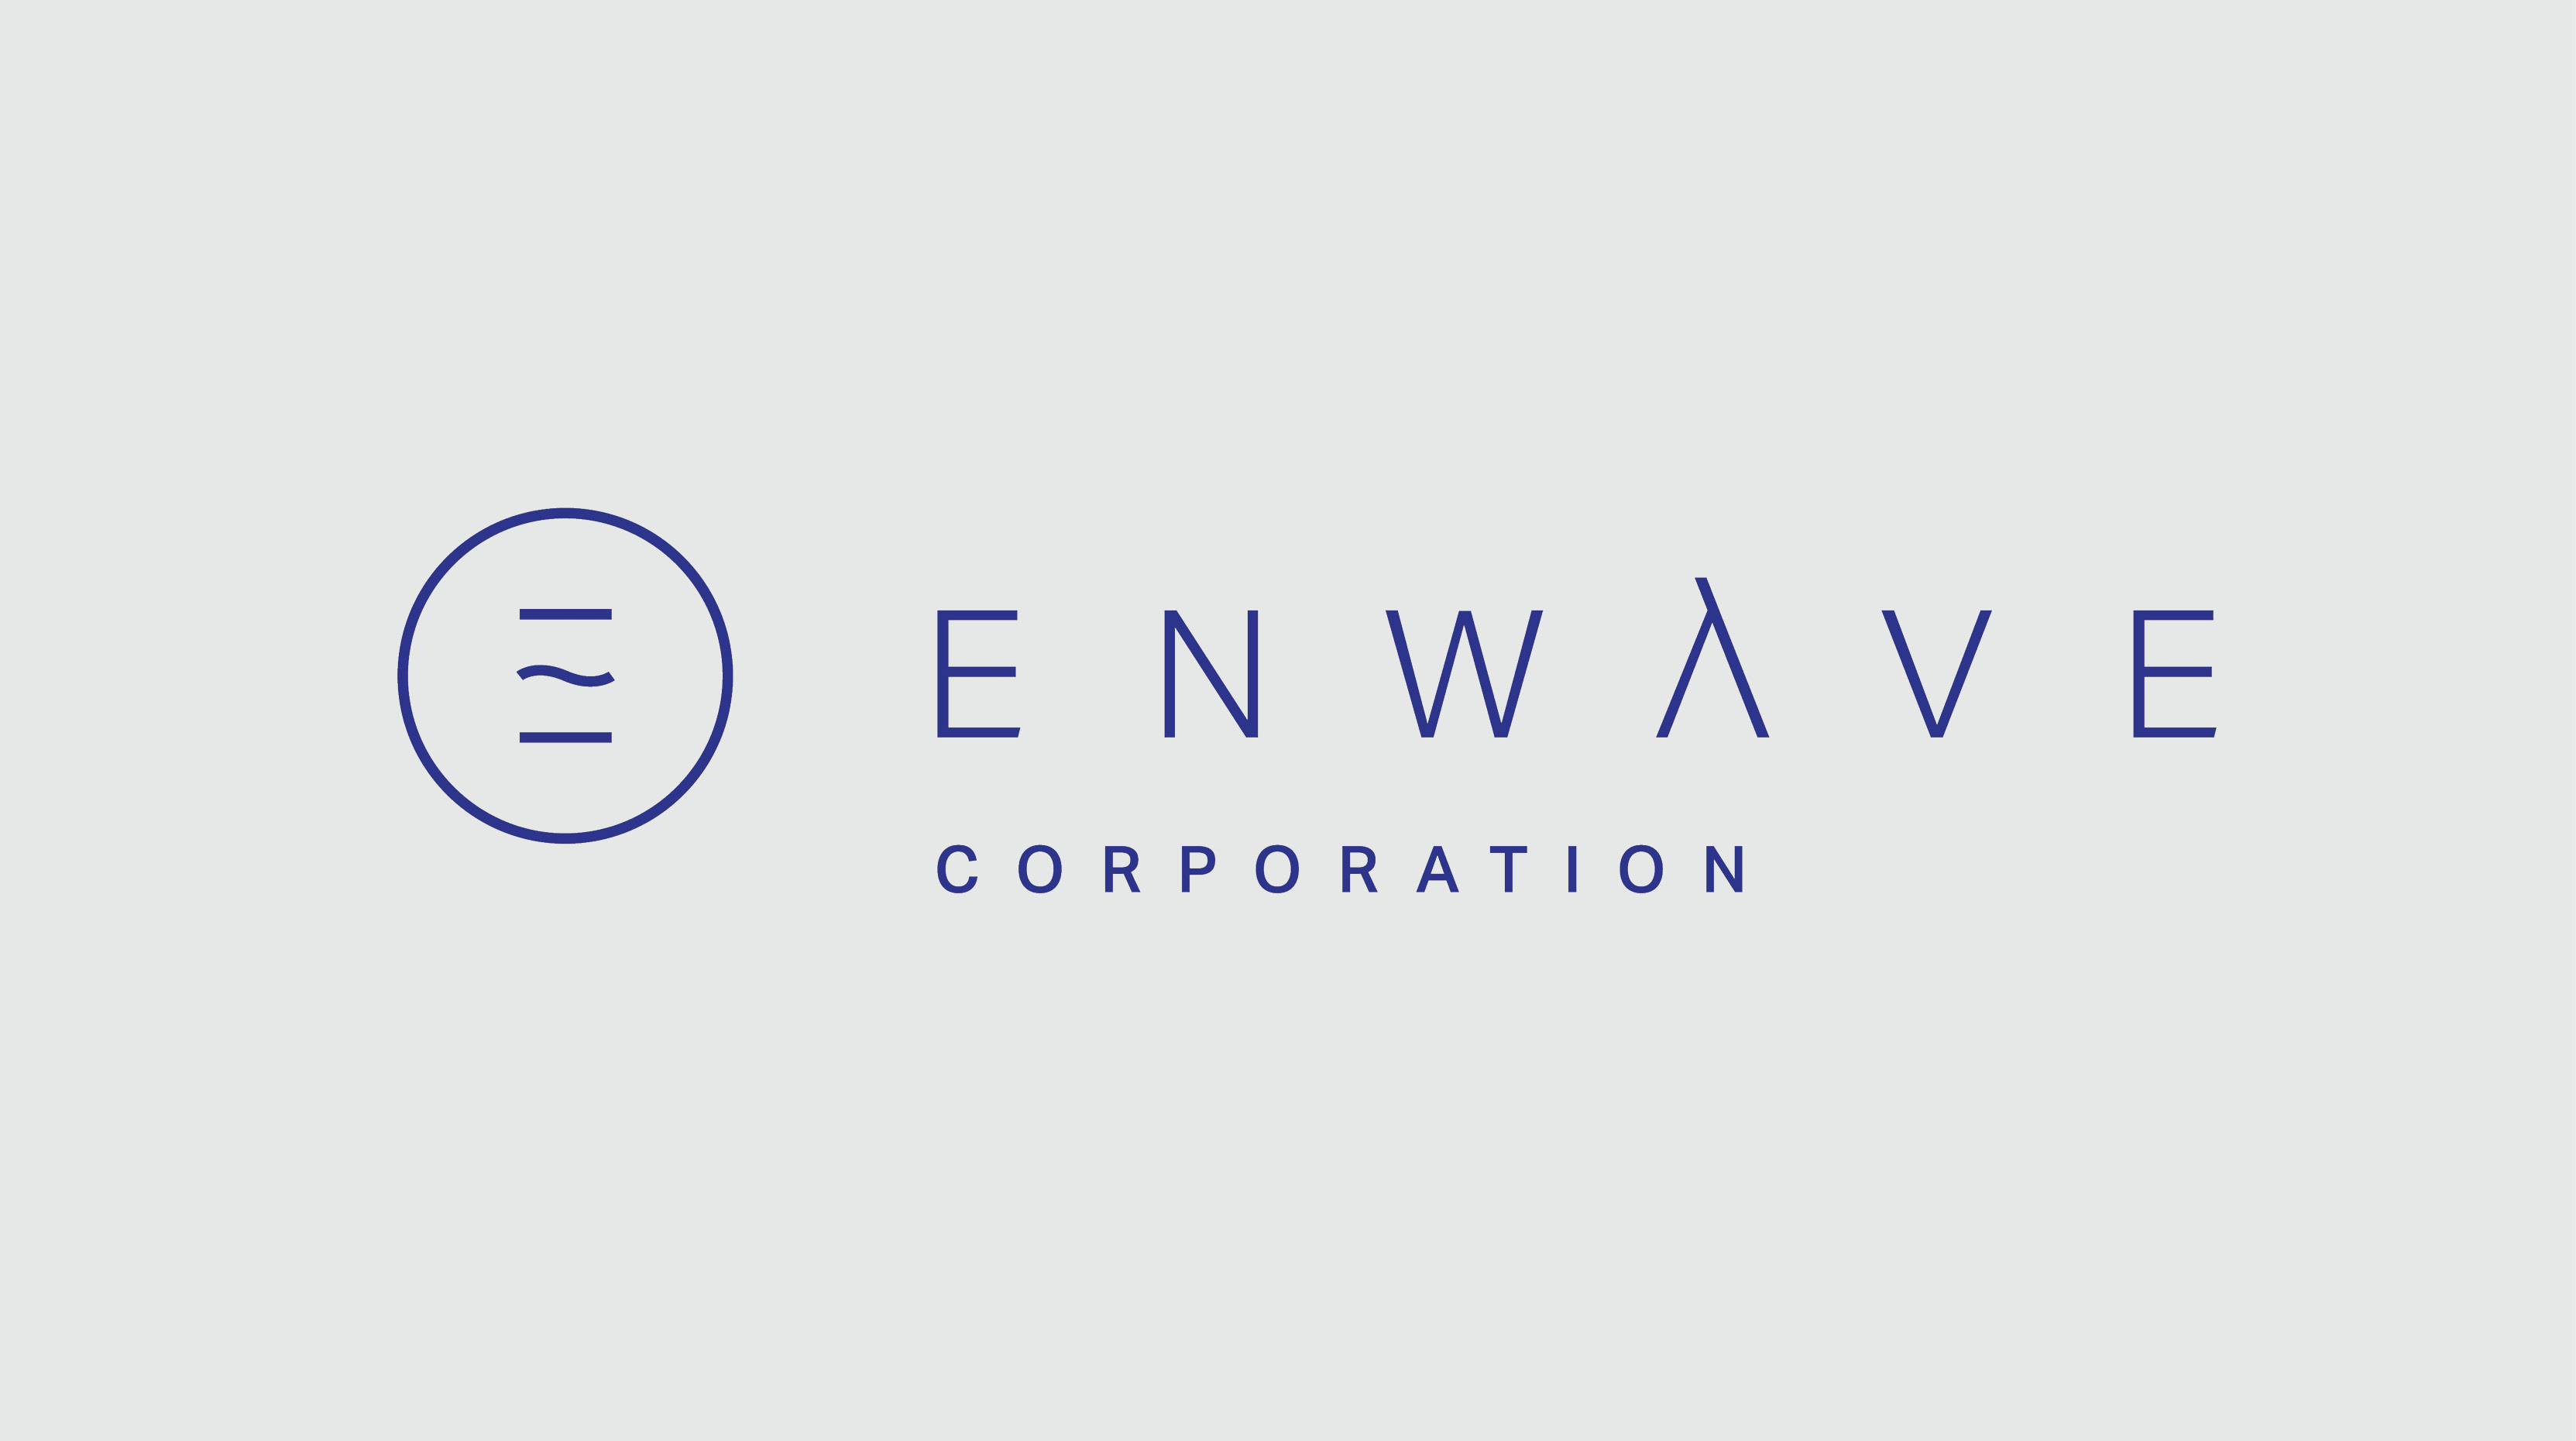 EnWave Signs Commercial Royalty-Bearing Licensewith KL Ballantyne Pty Ltd and Receives Purchase Order for REV™ Machinery